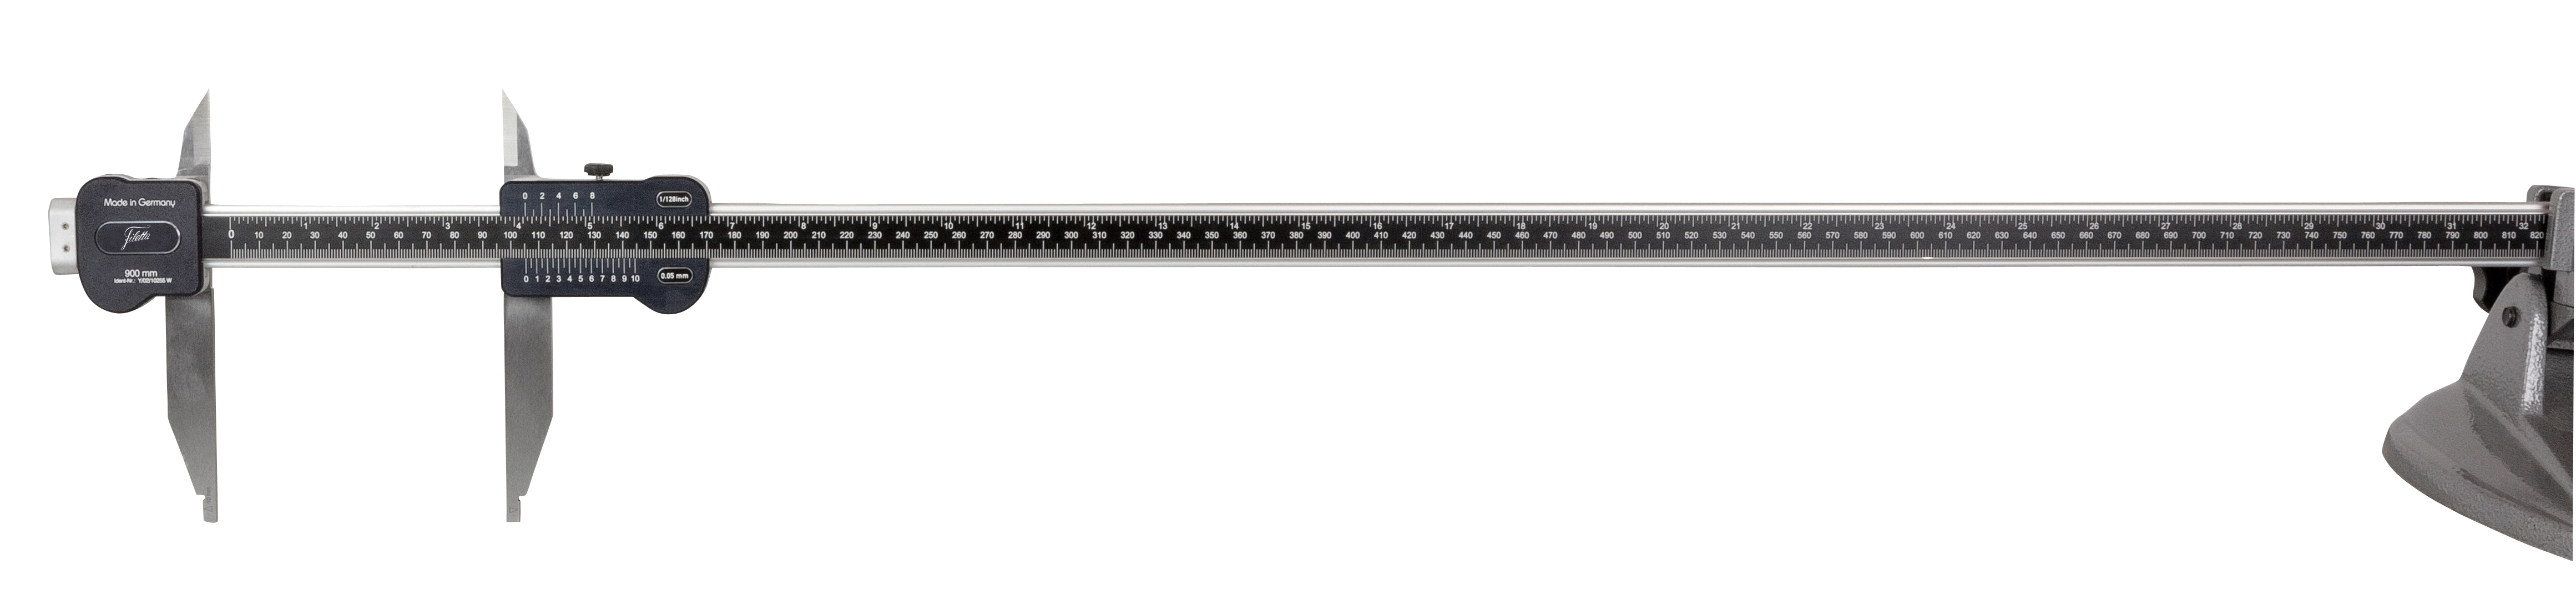 Parallax-free lightweight workshop caliper 0-900 mm